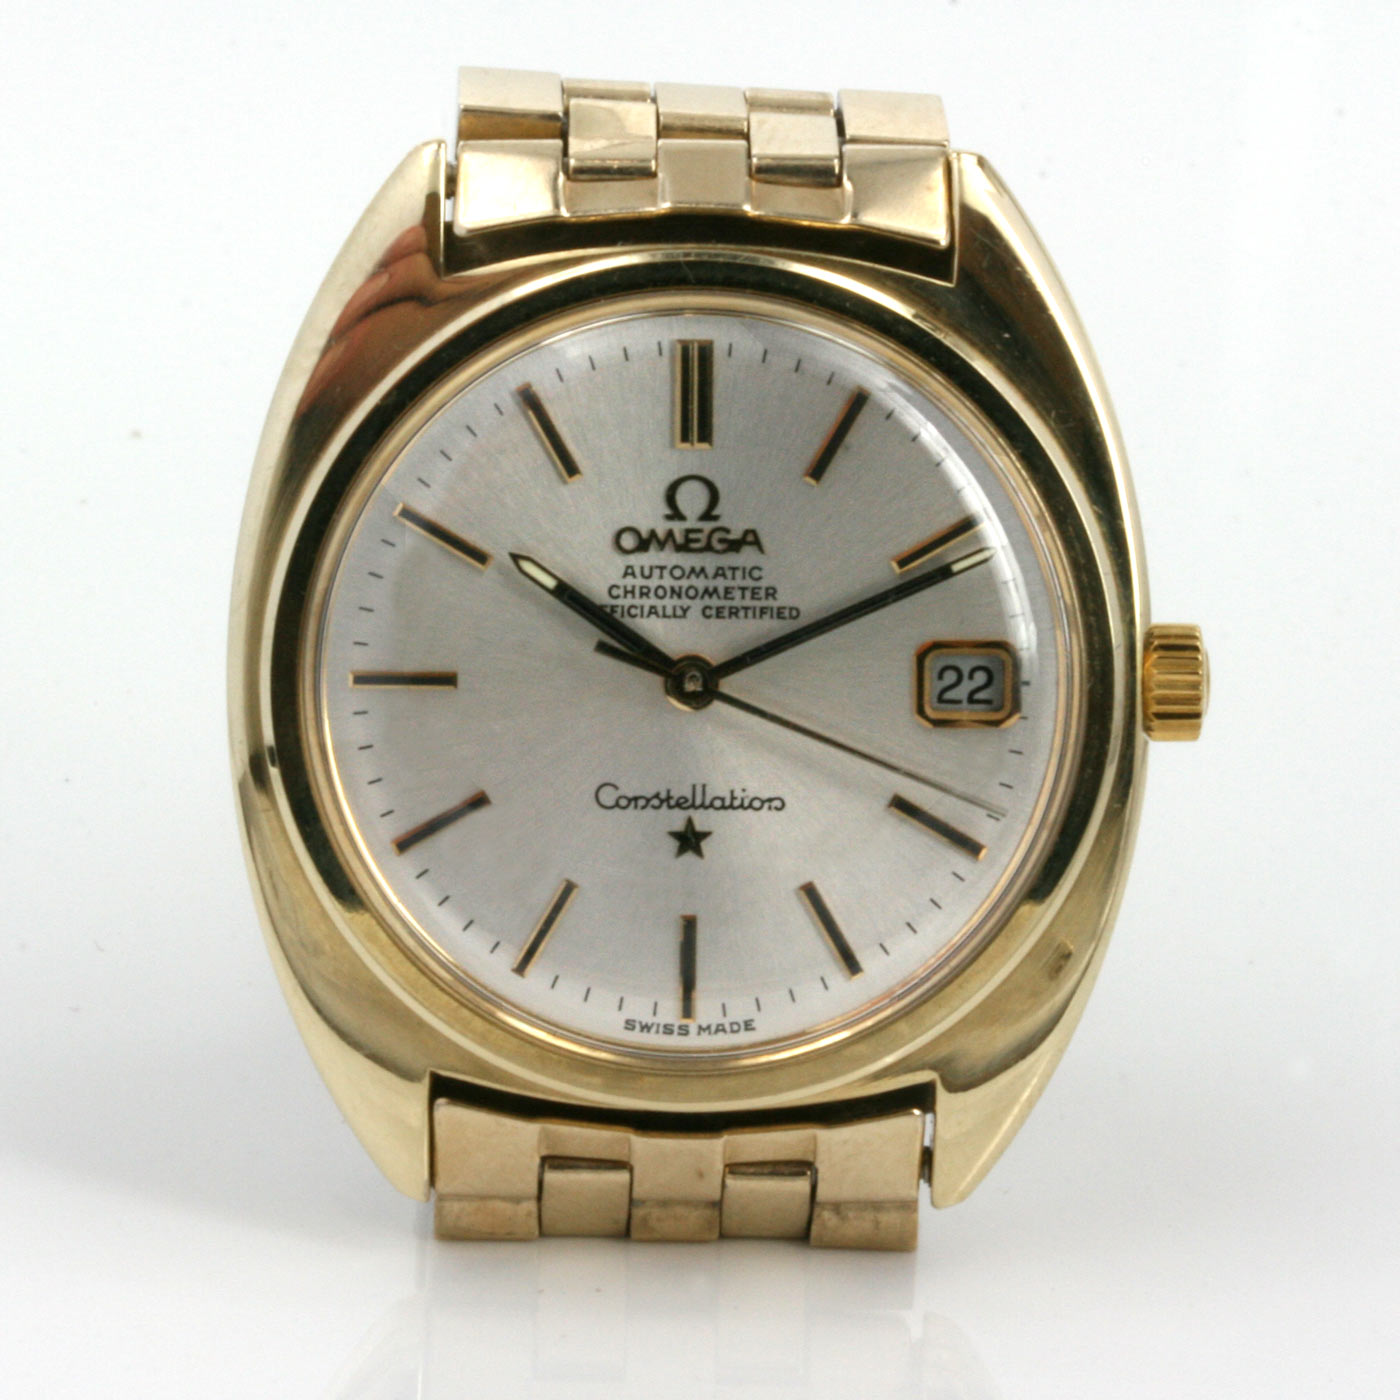 Buy vintage omega constellation watch sold items sold omega watches sydney kalmarantiques for Omega watch constellation